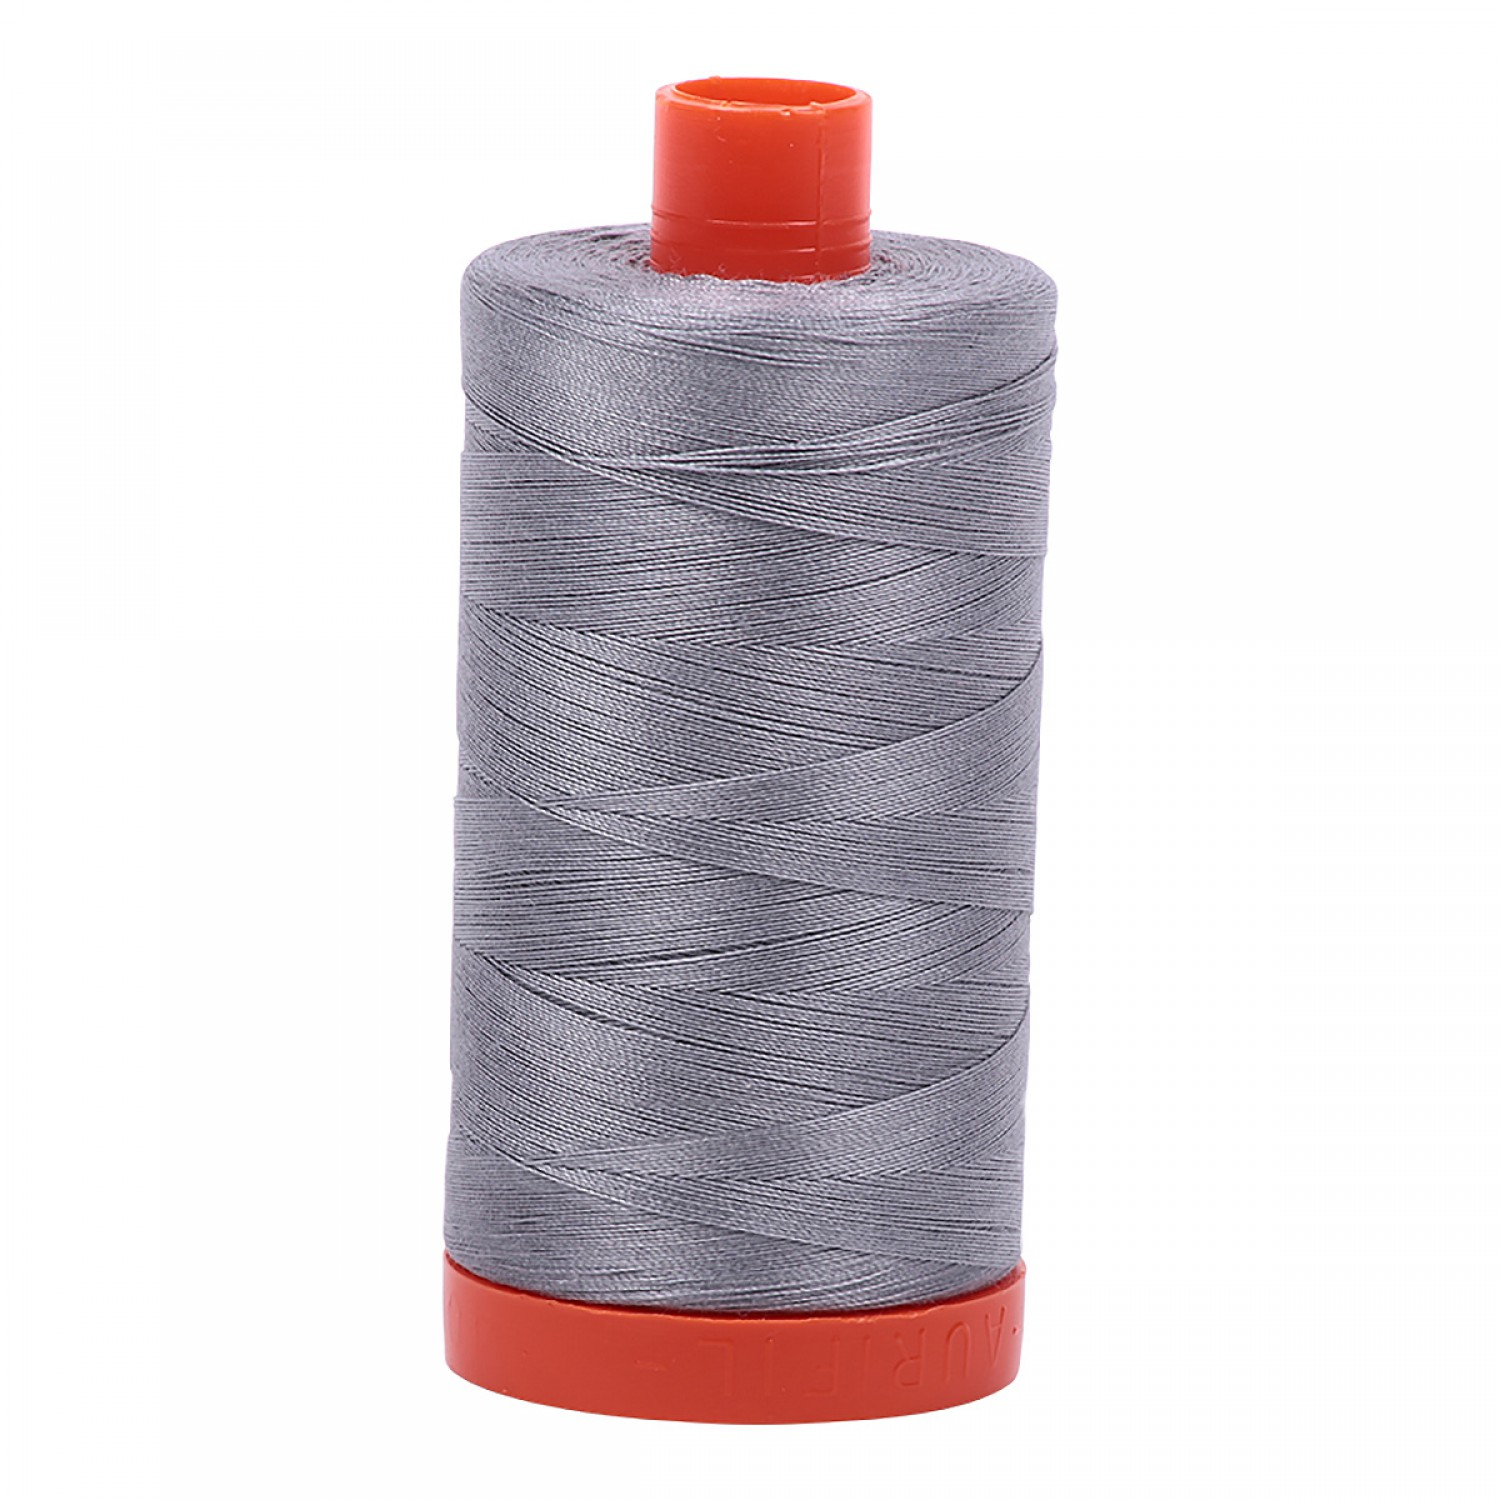 Aurifil Mako Cotton Thread - 2605 Grey